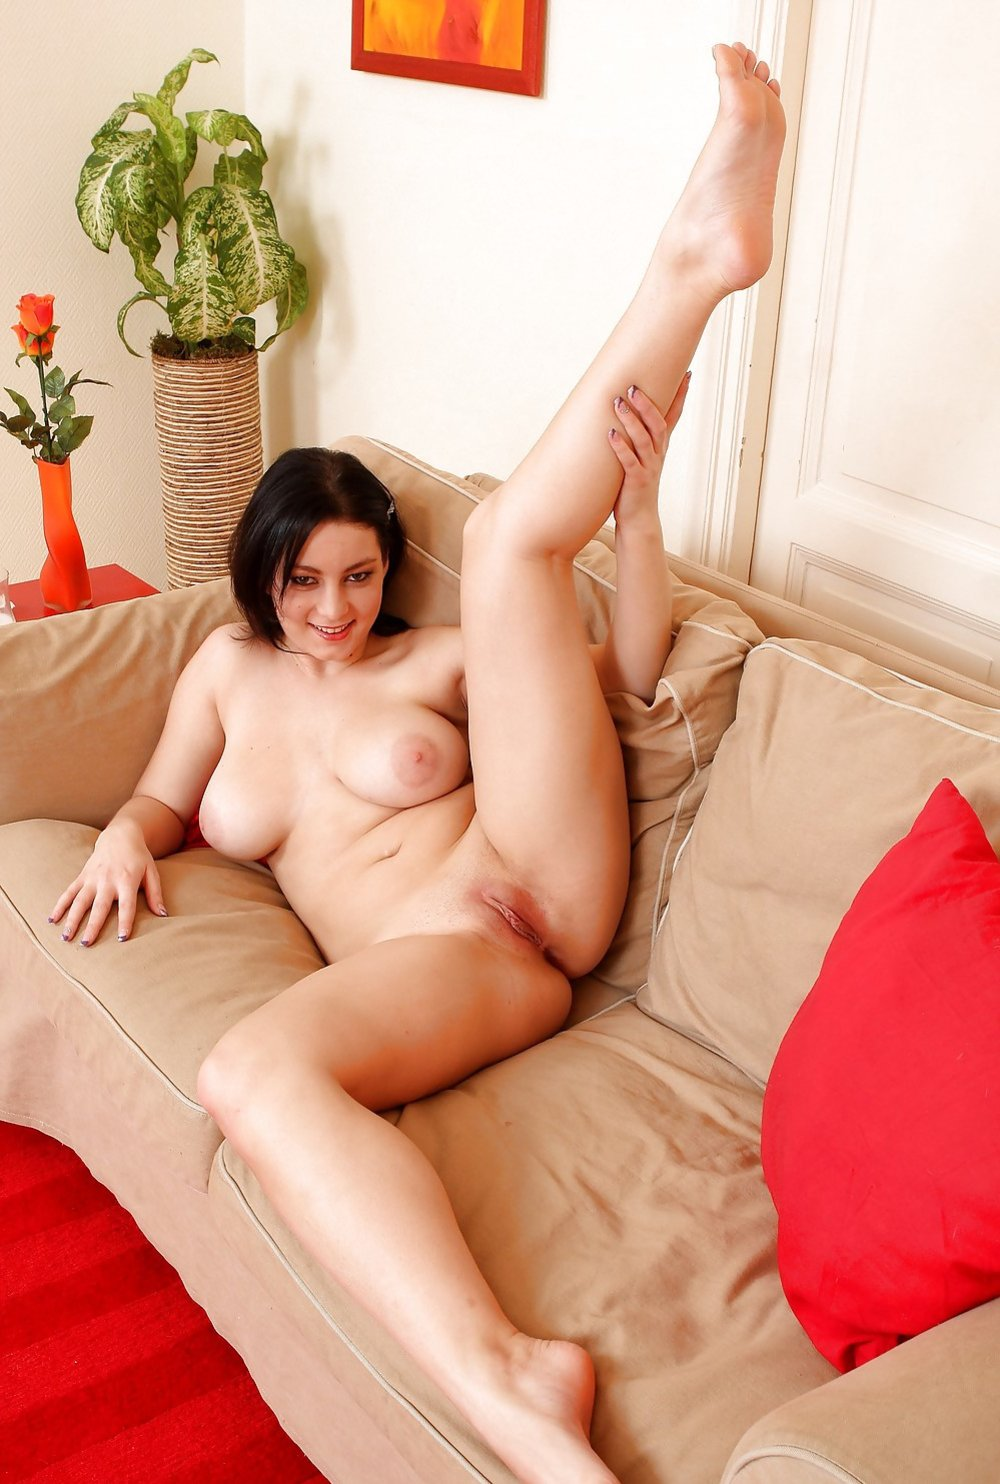 bisexual lesbian local naked woman